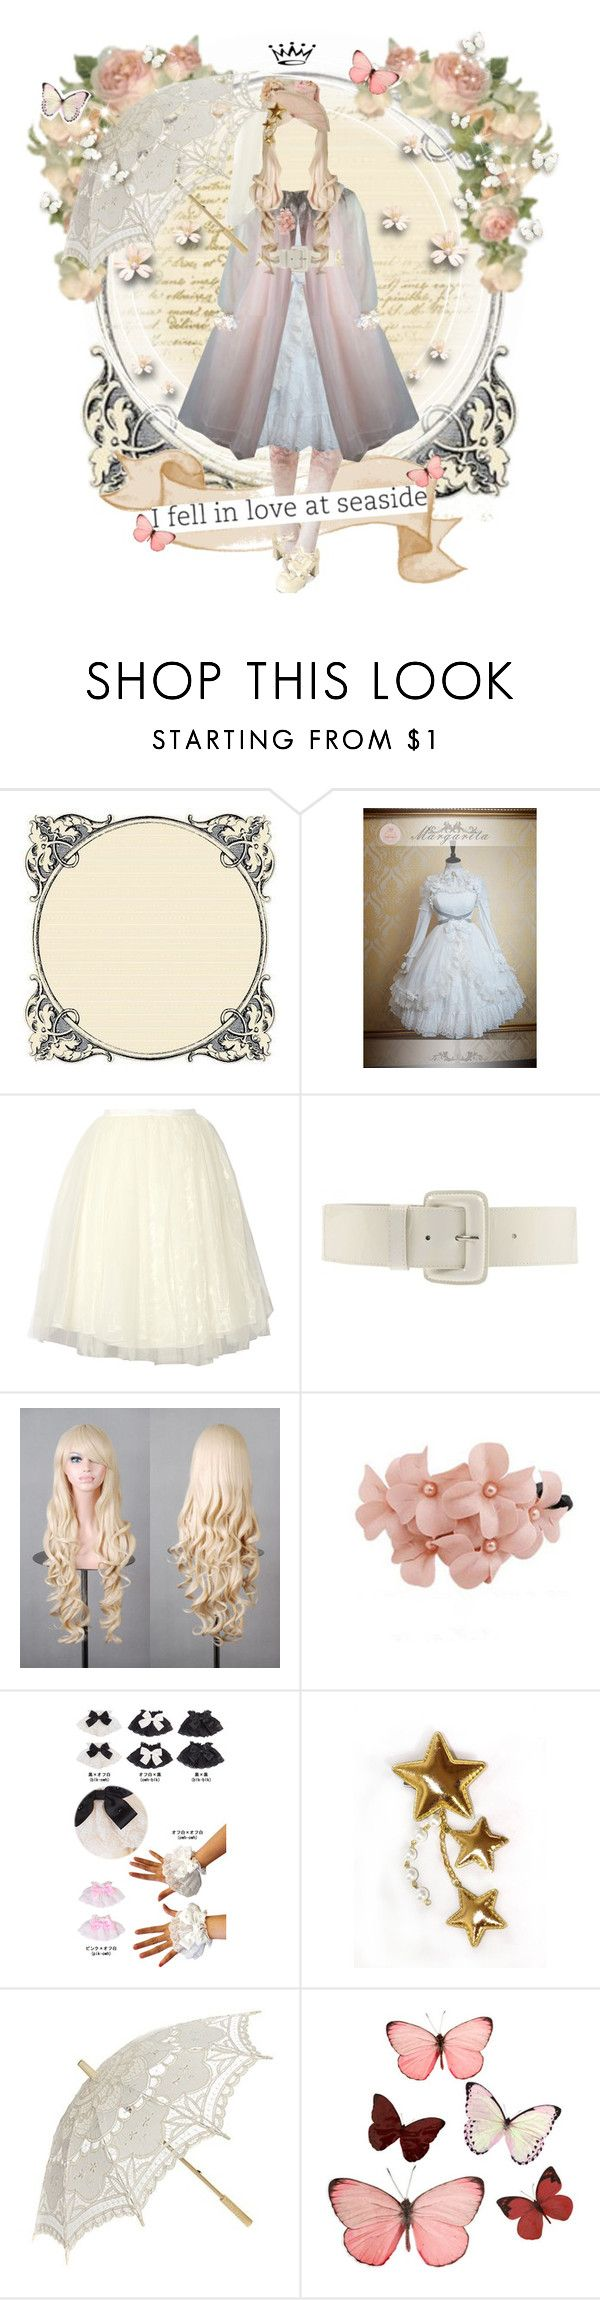 """The Pink Pirate Princess"" by koneji ❤ liked on Polyvore featuring Alice + Olivia, The 2nd Skin Co., Bodyline, Leisureland, H&M, women's clothing, women, female, woman and misses"